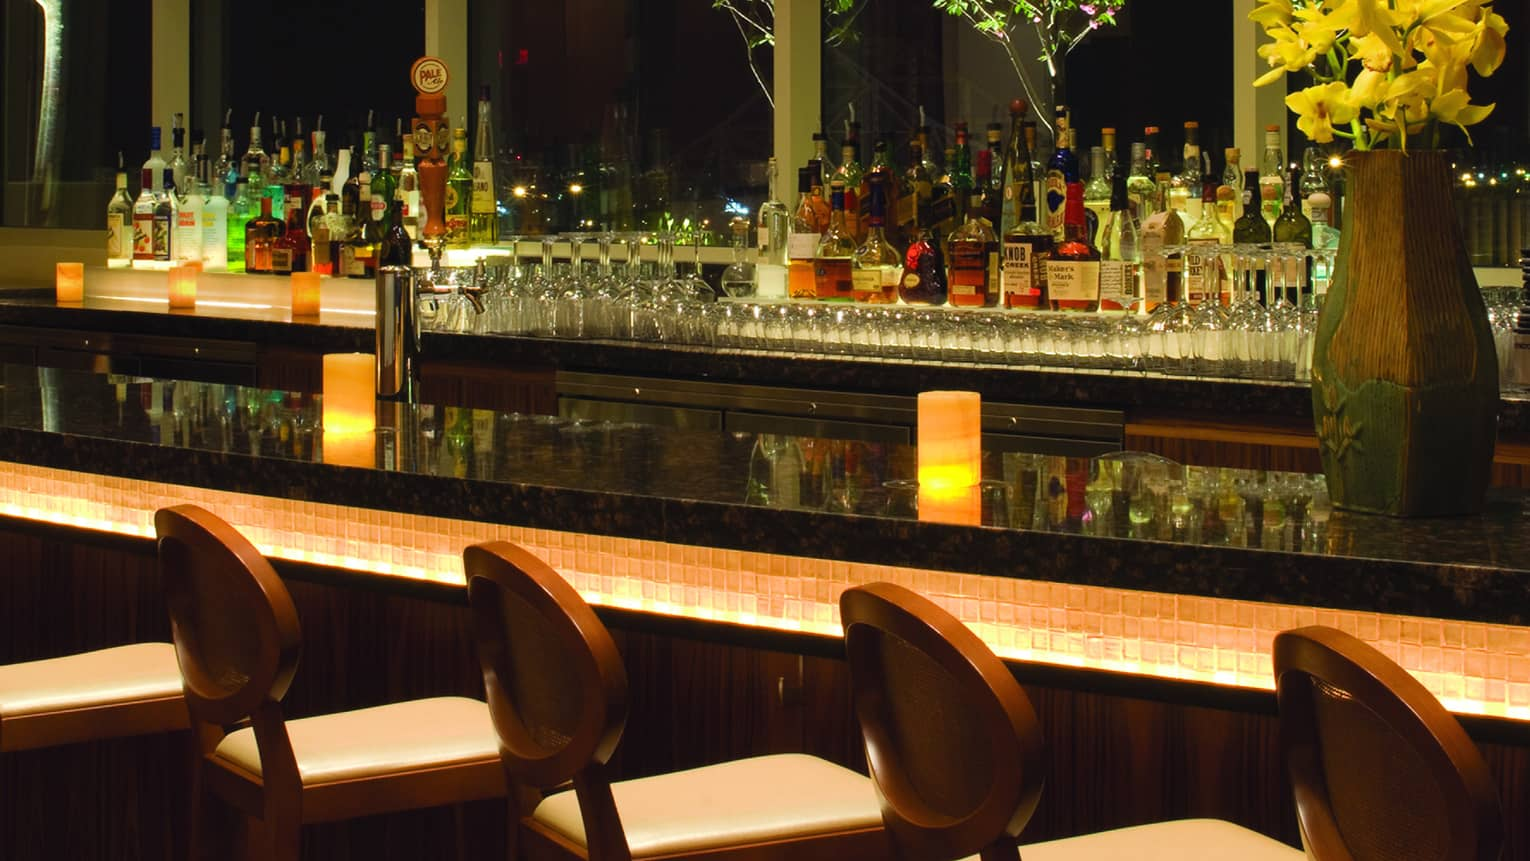 Barstools line black marble Cielo bar at night with glowing candles, wood vase with yellow flowers